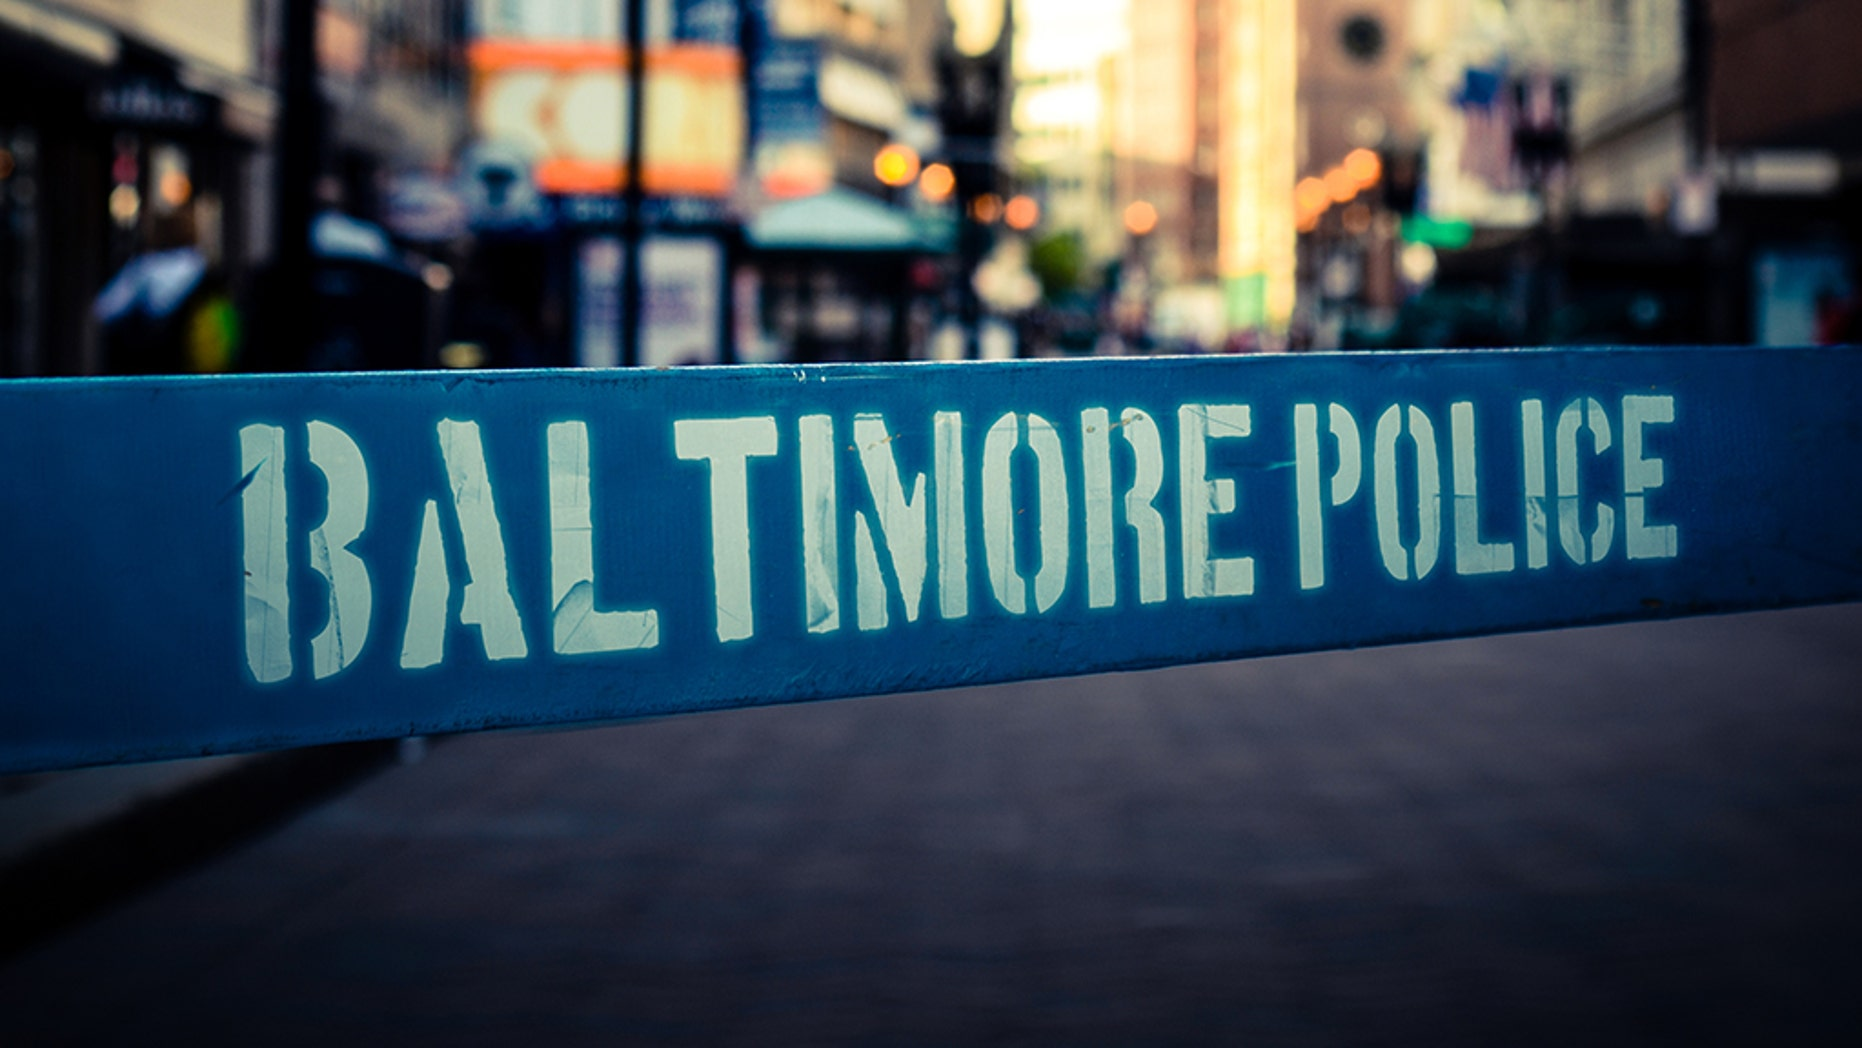 The Baltimore Police Department announced on Wednesday it was assigning 115 more officers to work patrol shifts in an effort to reduce crime.